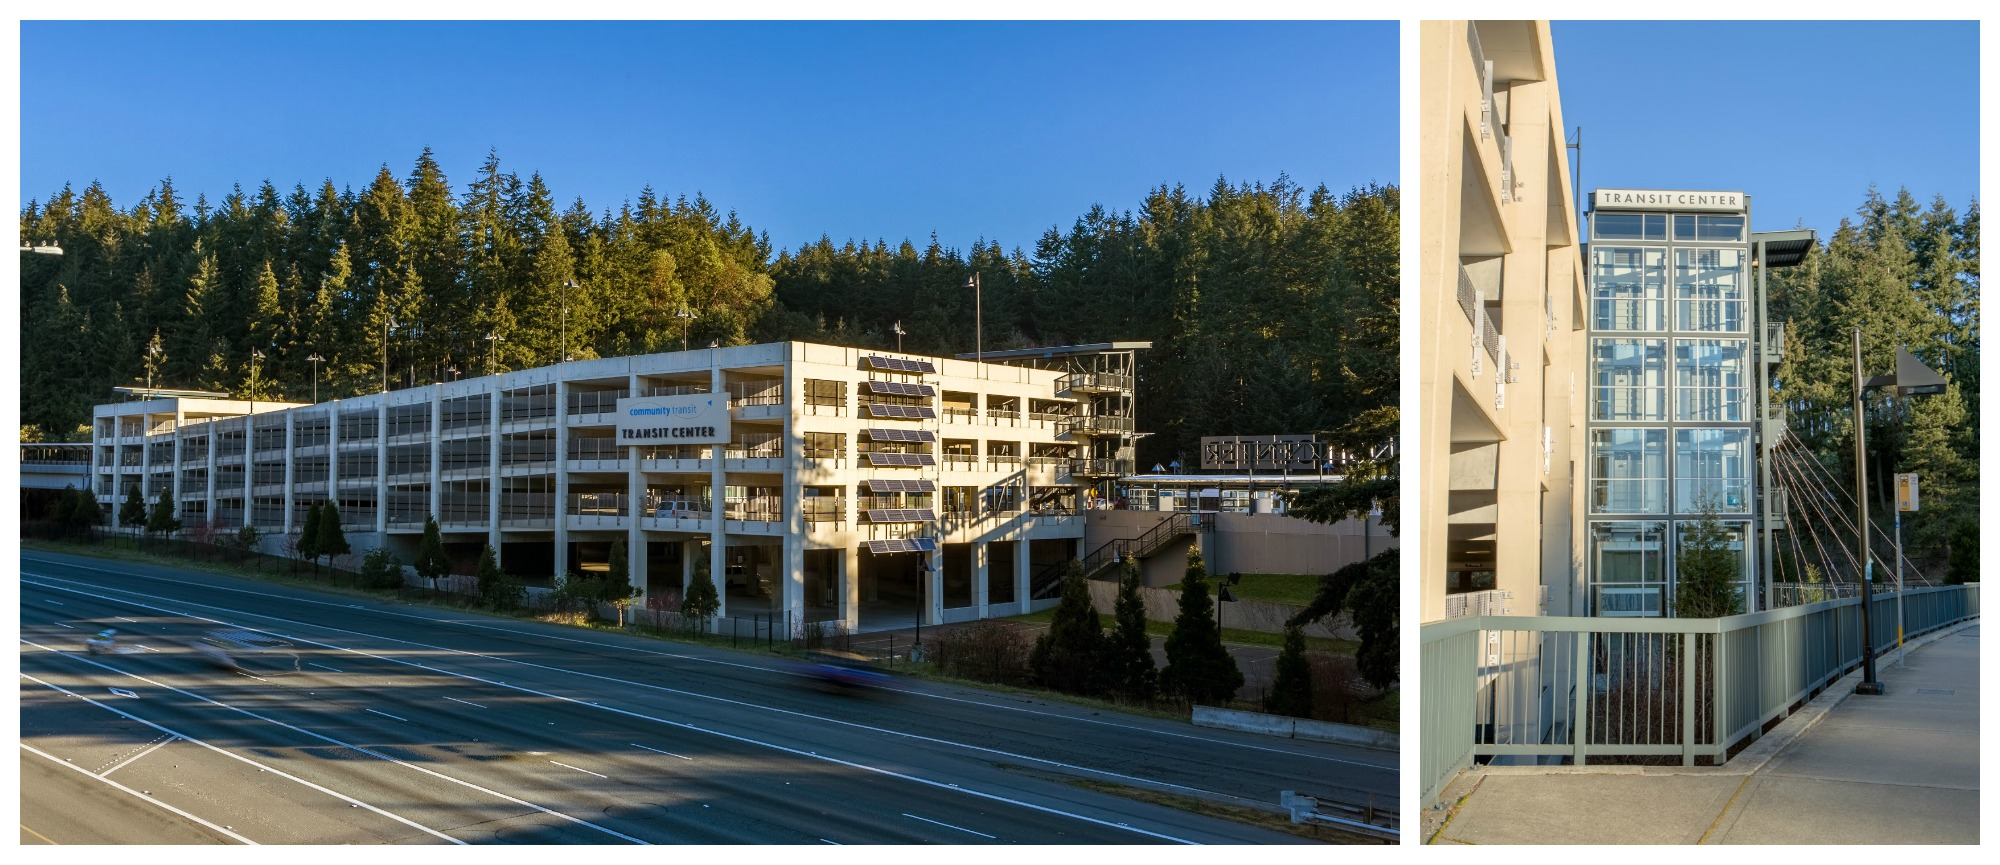 The Mountlake Terrace Transit Center includes 890 parking spaces, and is served by Bus 511, Bus 512, and Bus 513.